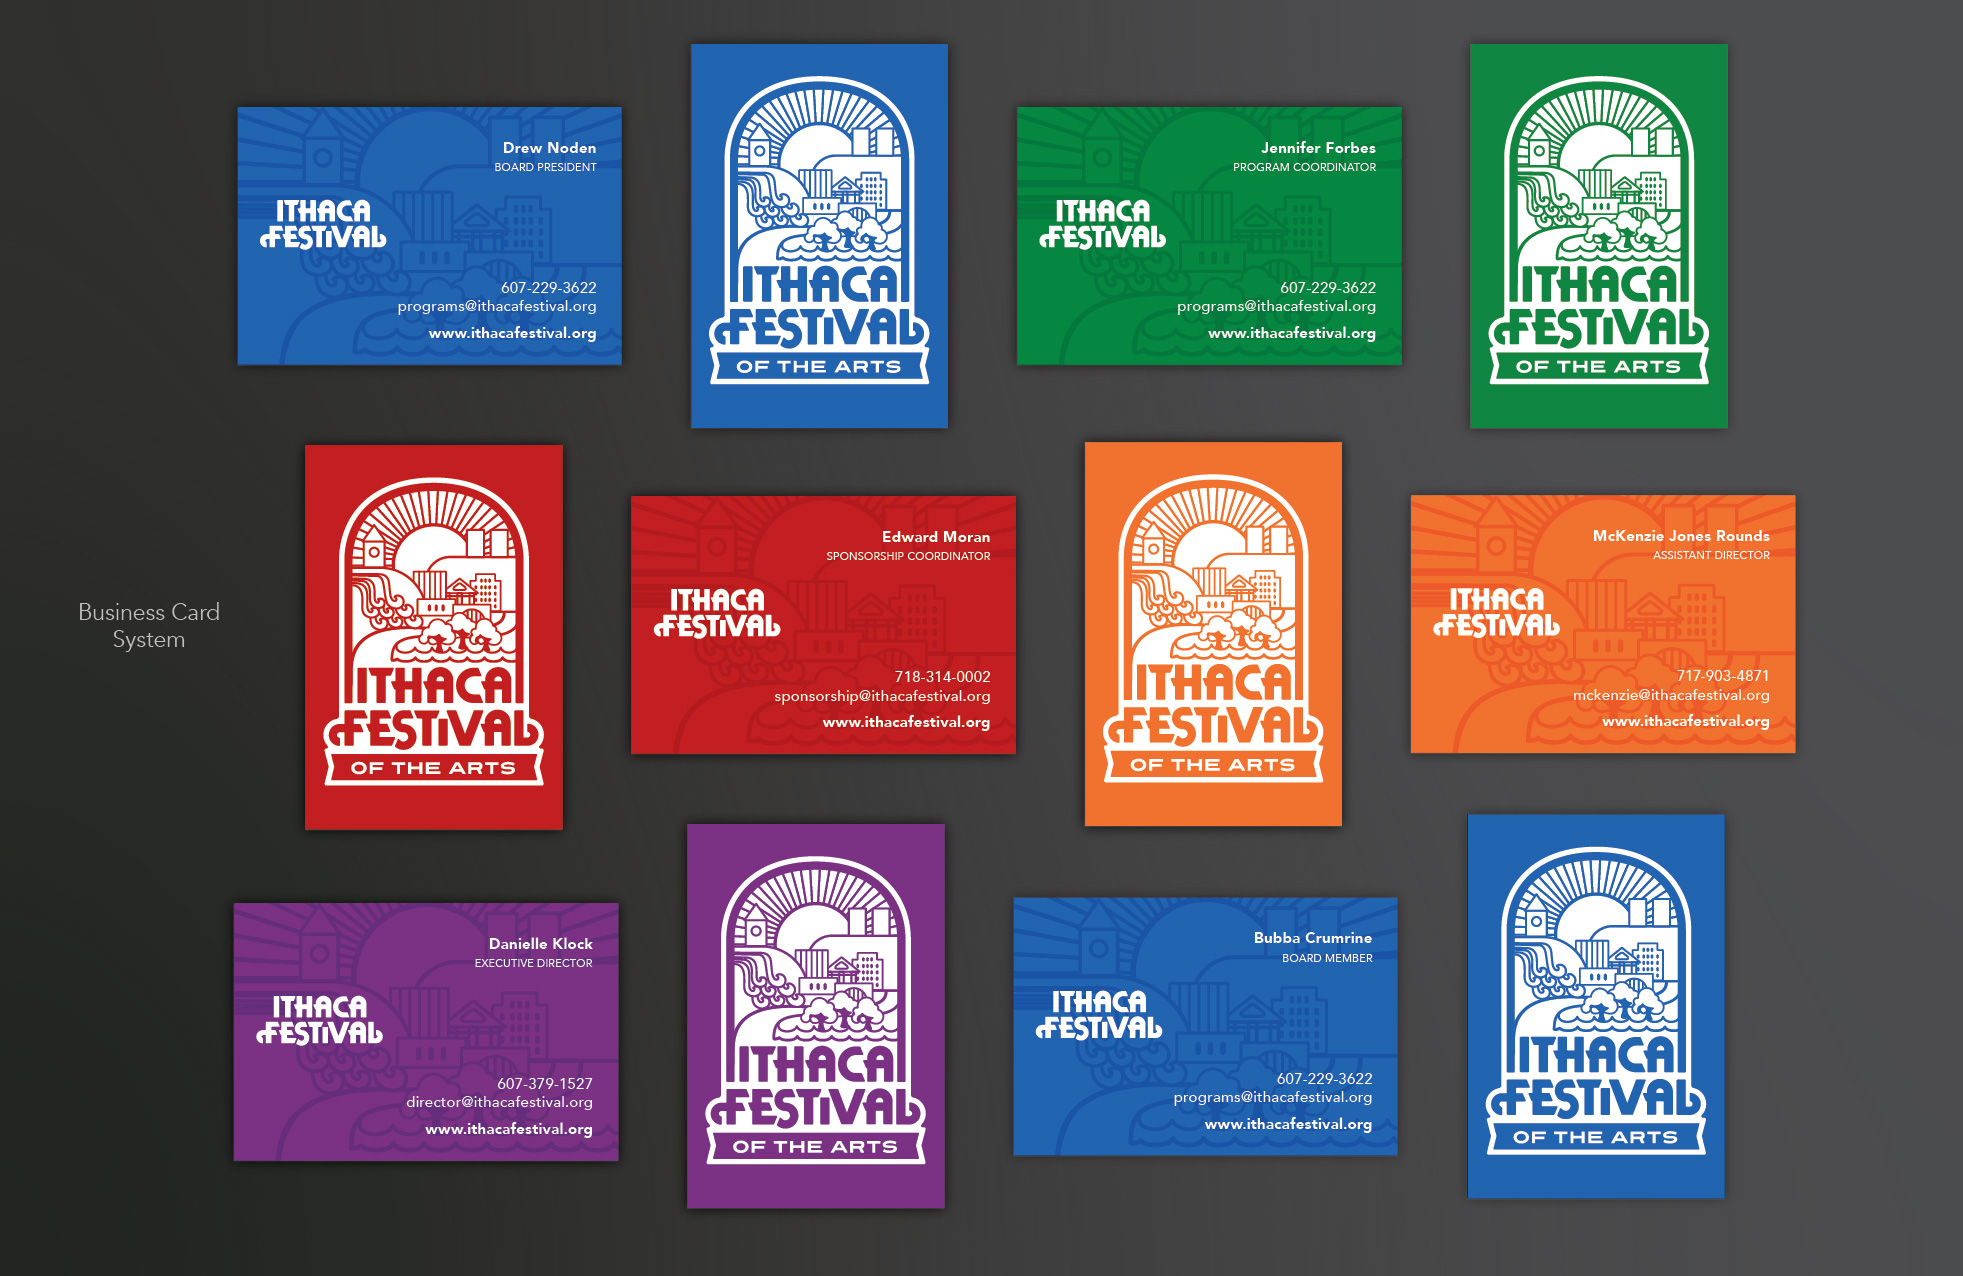 The preeminent arts and music festival in upstate NY, Ithaca festival is an exciting arts festival in upstate NY that had been working with a thirty year old aging identity.